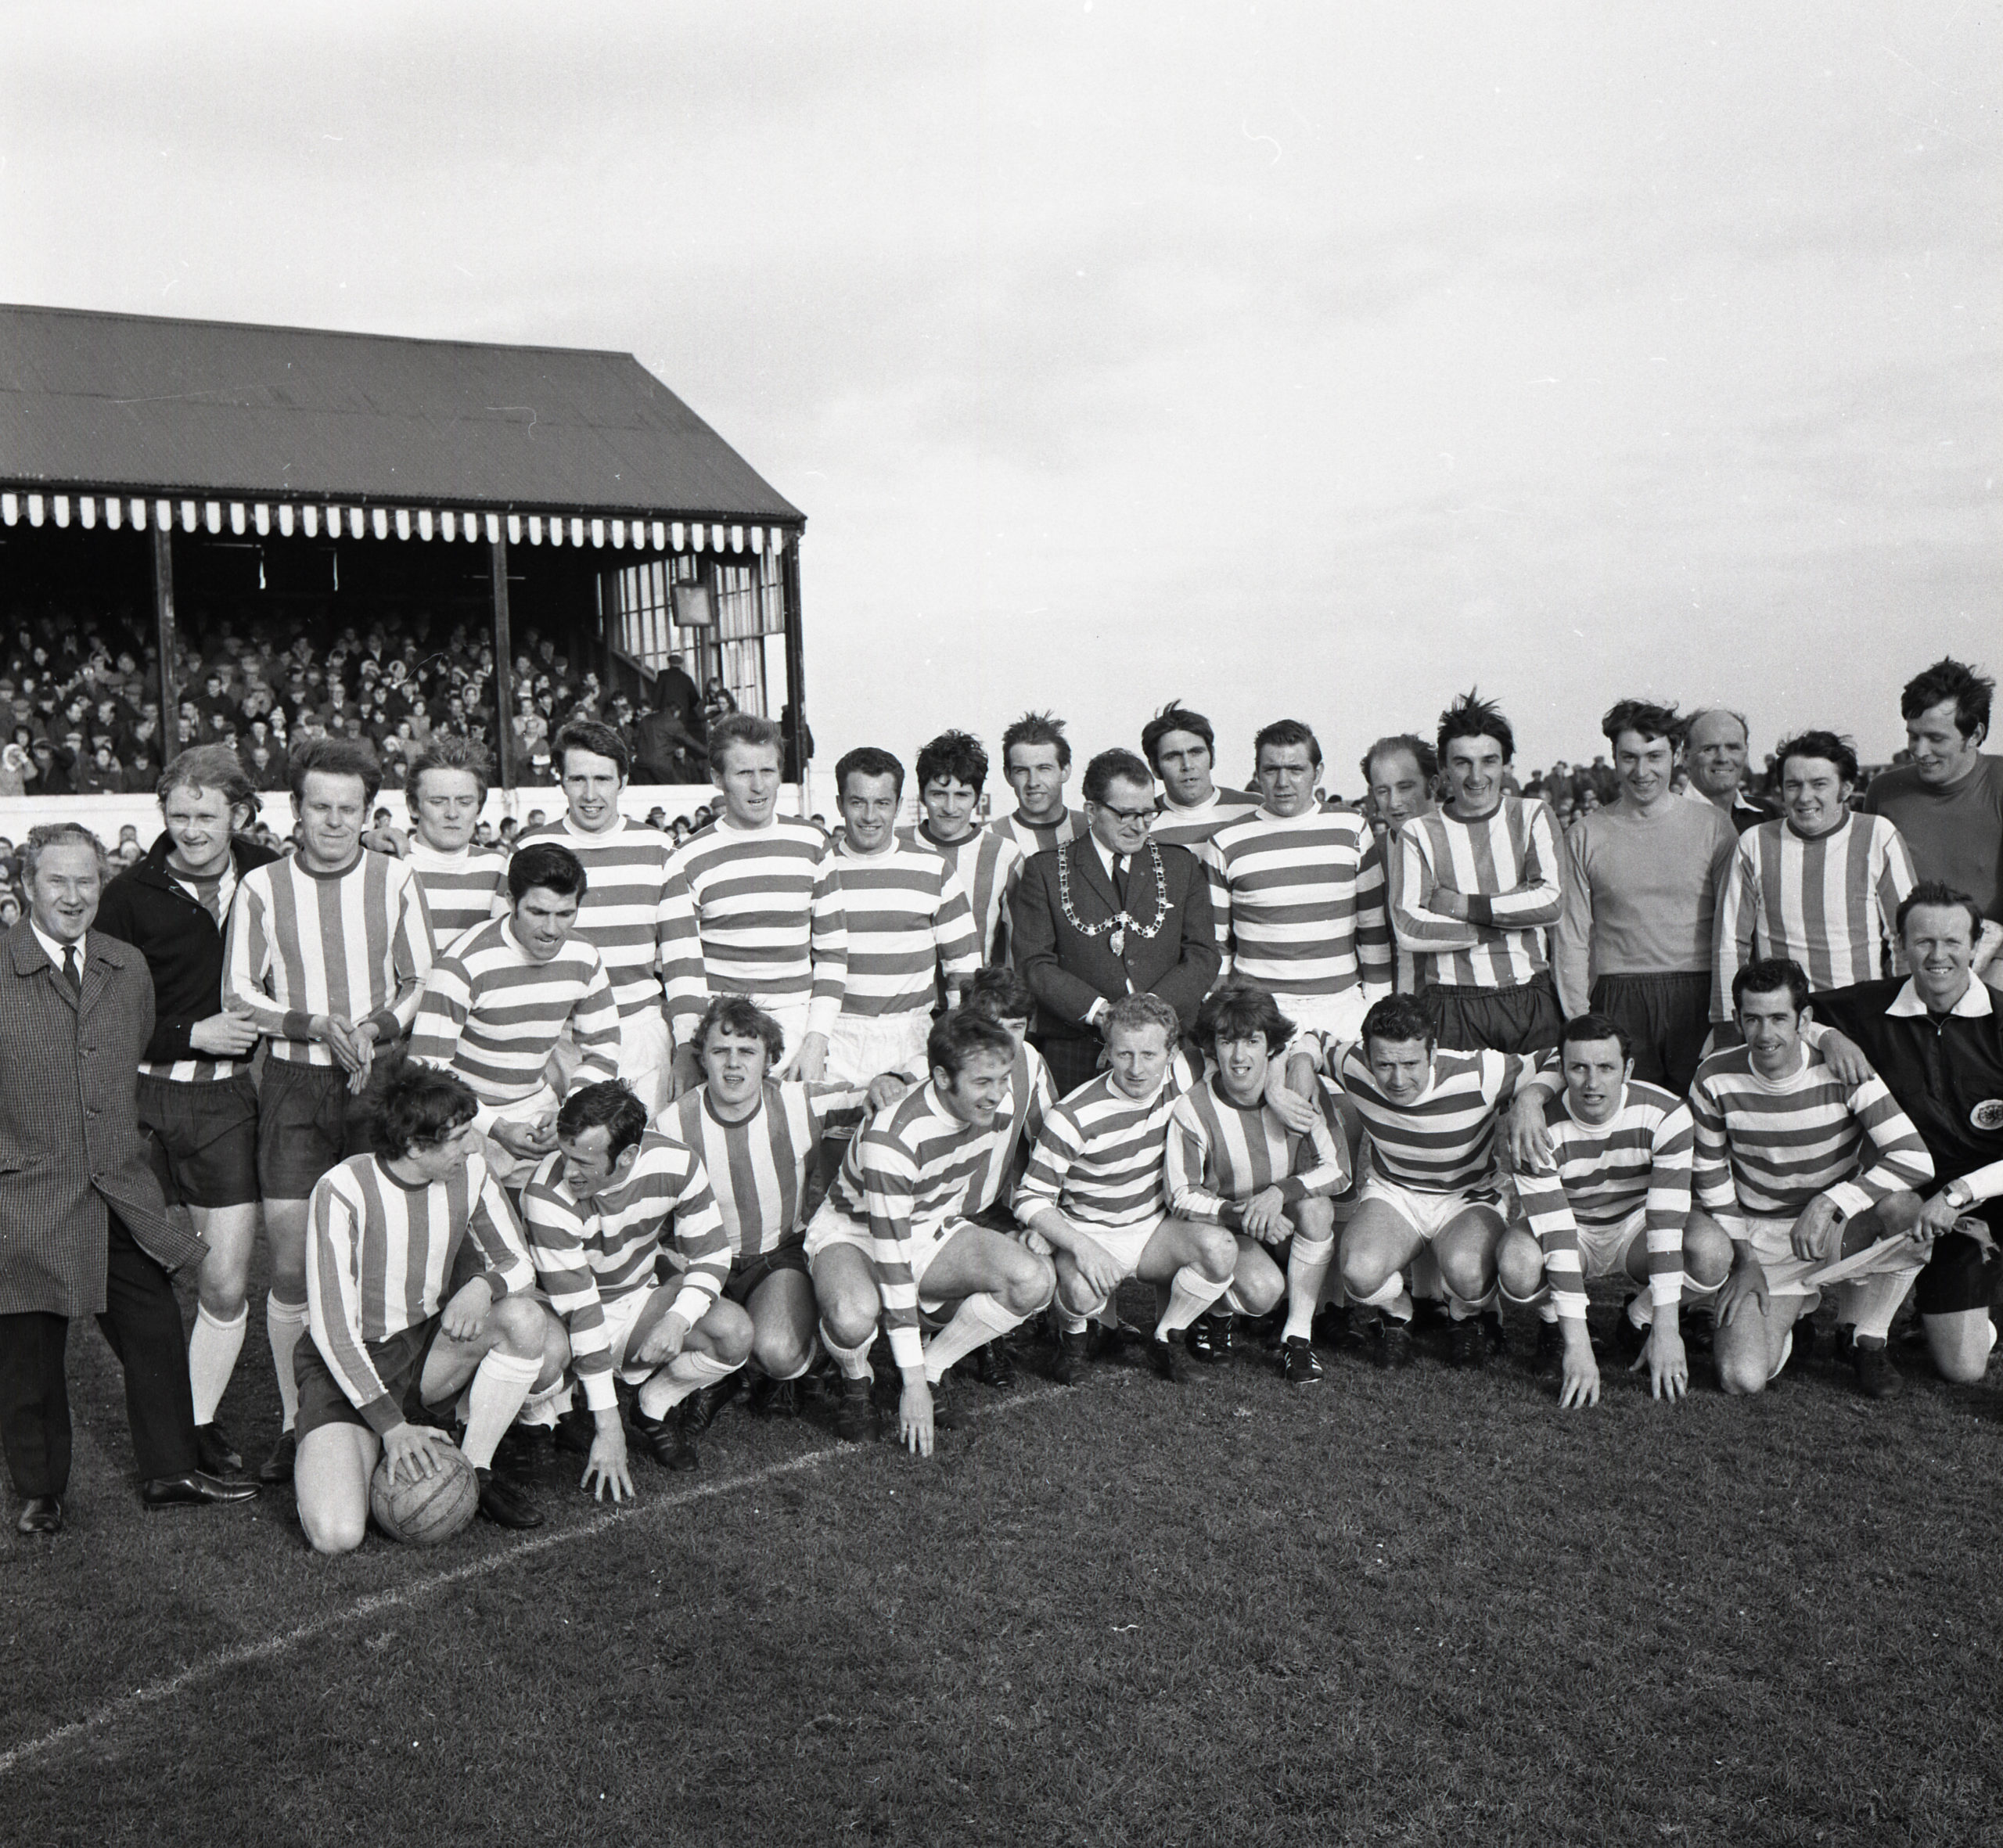 Today marks 50 years since the charity match between Fraserburgh and Celtic